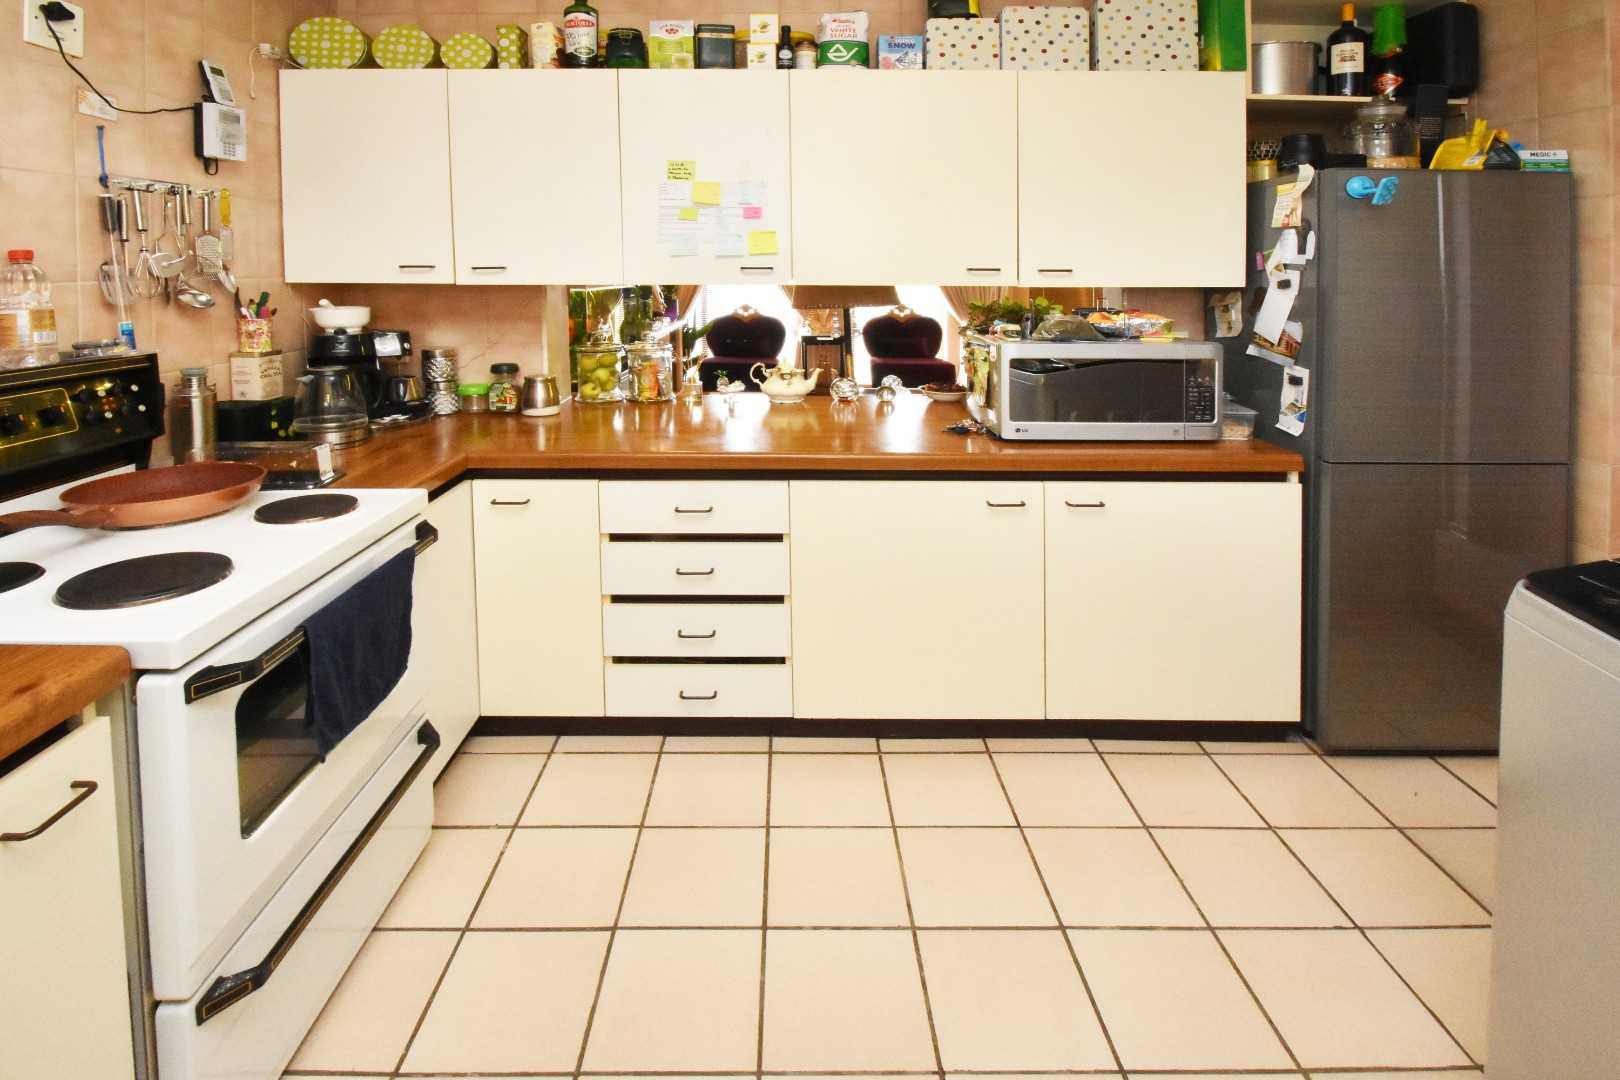 Kitchen is spacious, with plenty of cupboards and usable counter tops